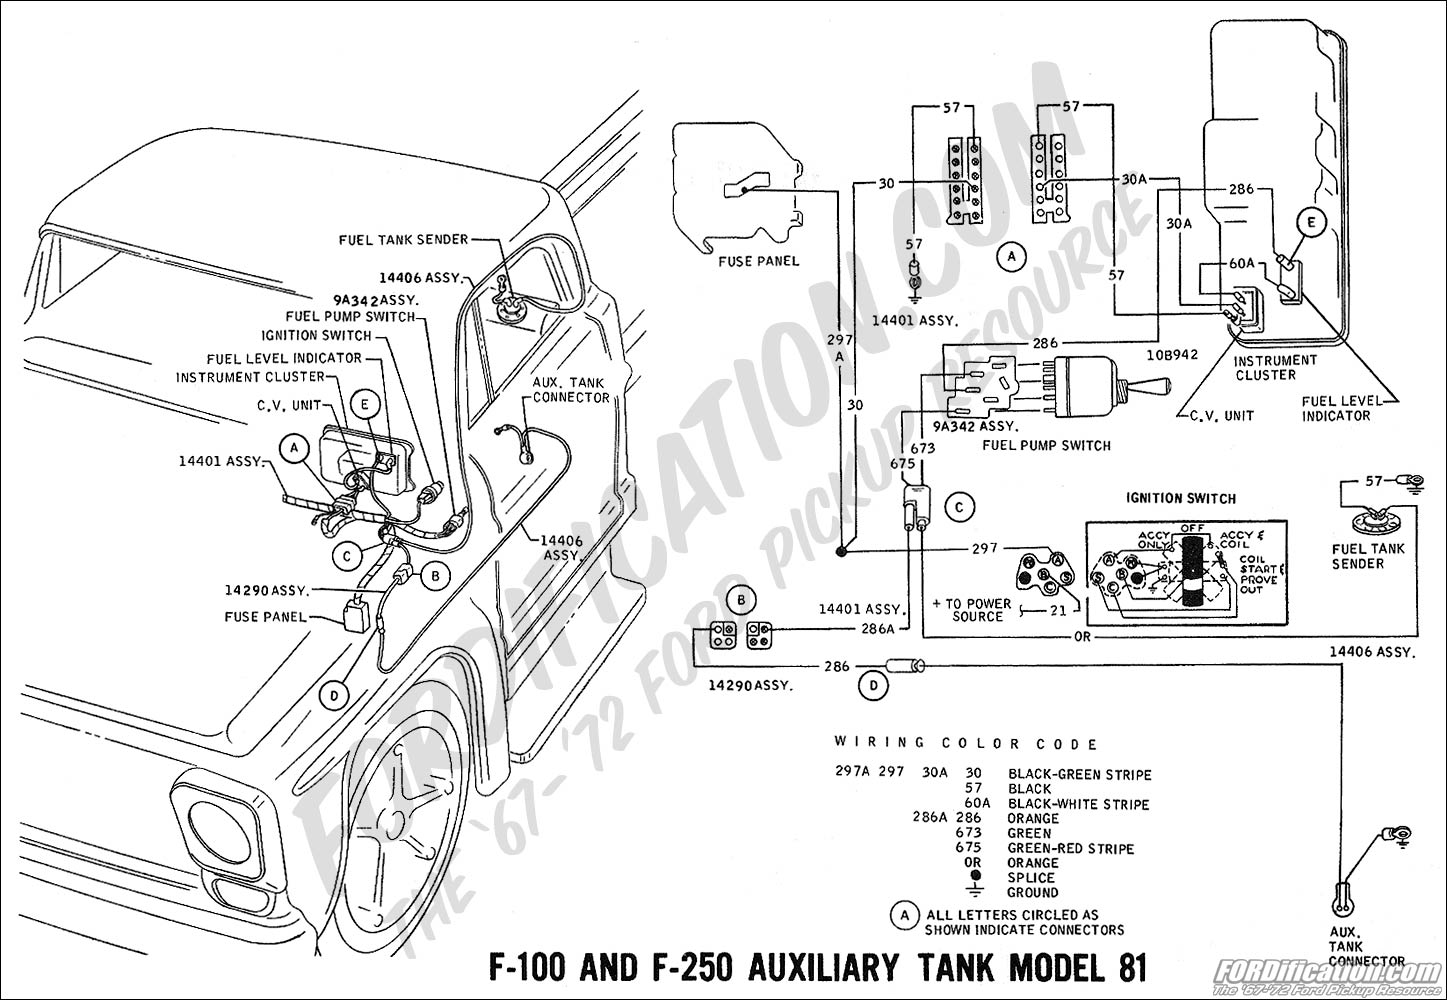 1978 ford f150 truck fuse box electrical wiring diagramsfuse box 1976 f 150 wiring diagram todays 2002 ford f150 fuse box 1978 ford f150 truck fuse box